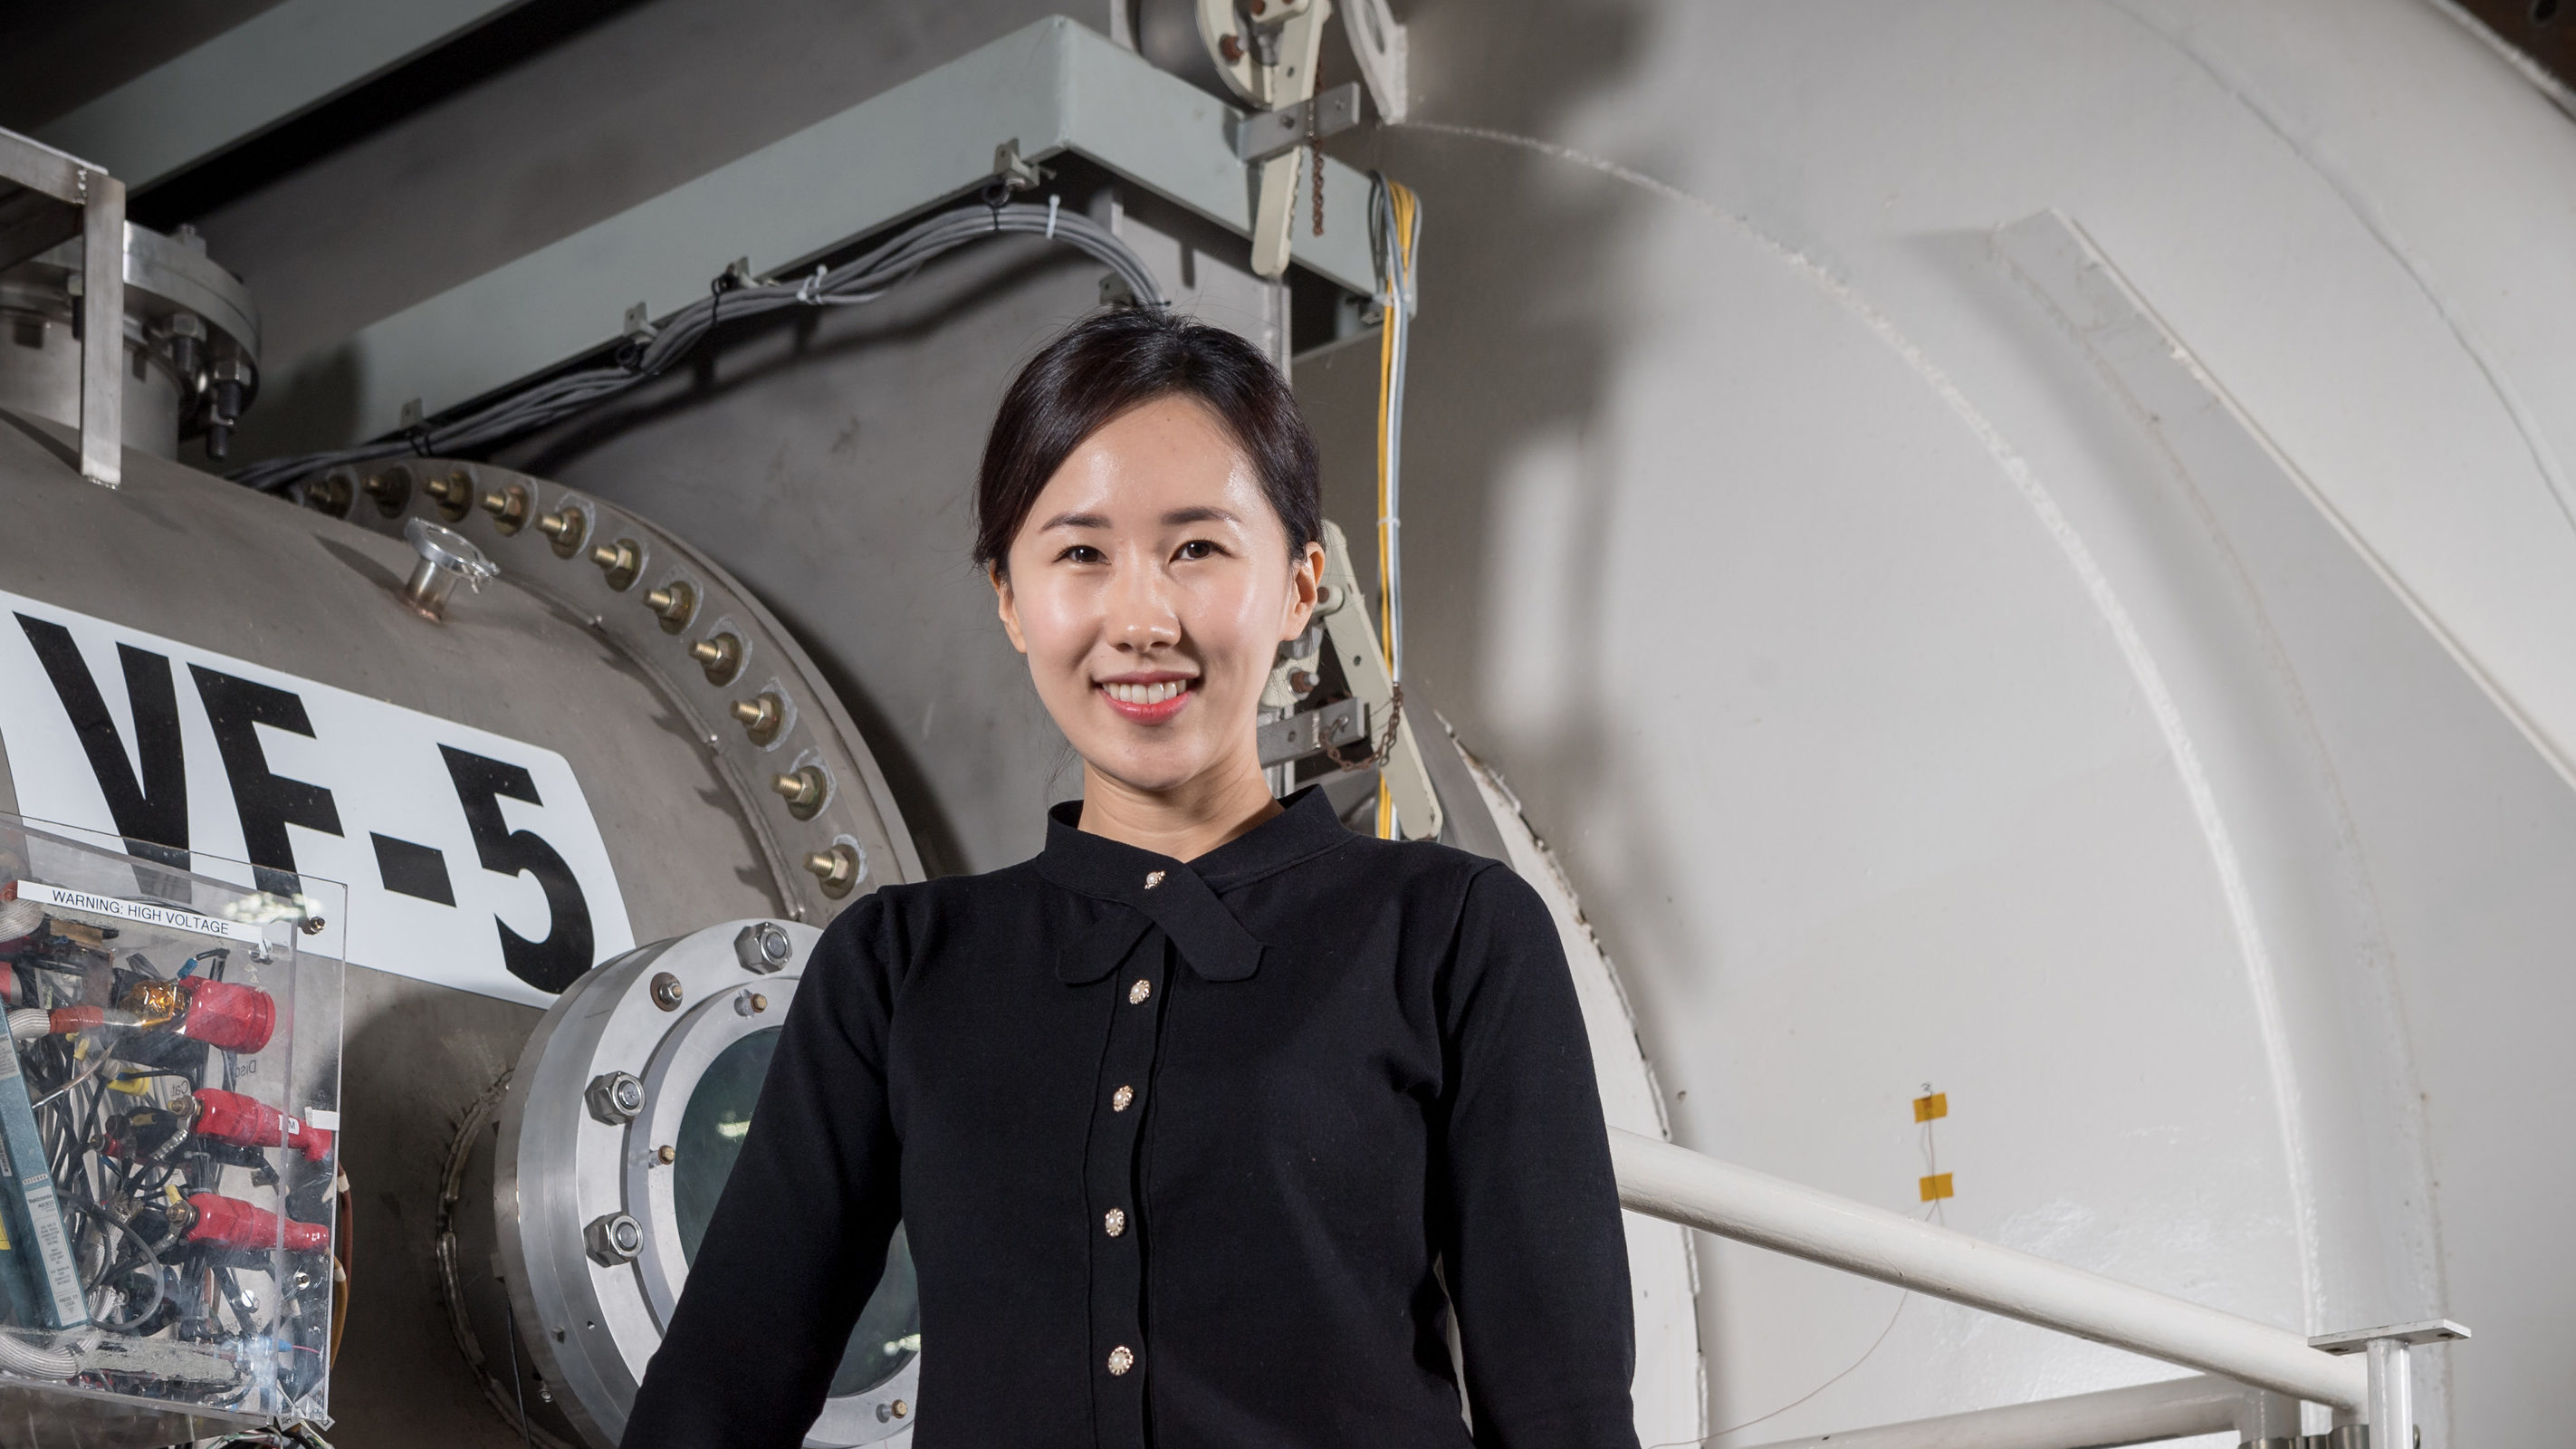 Celebrating diversity in engineering: Dr. Maria Choi